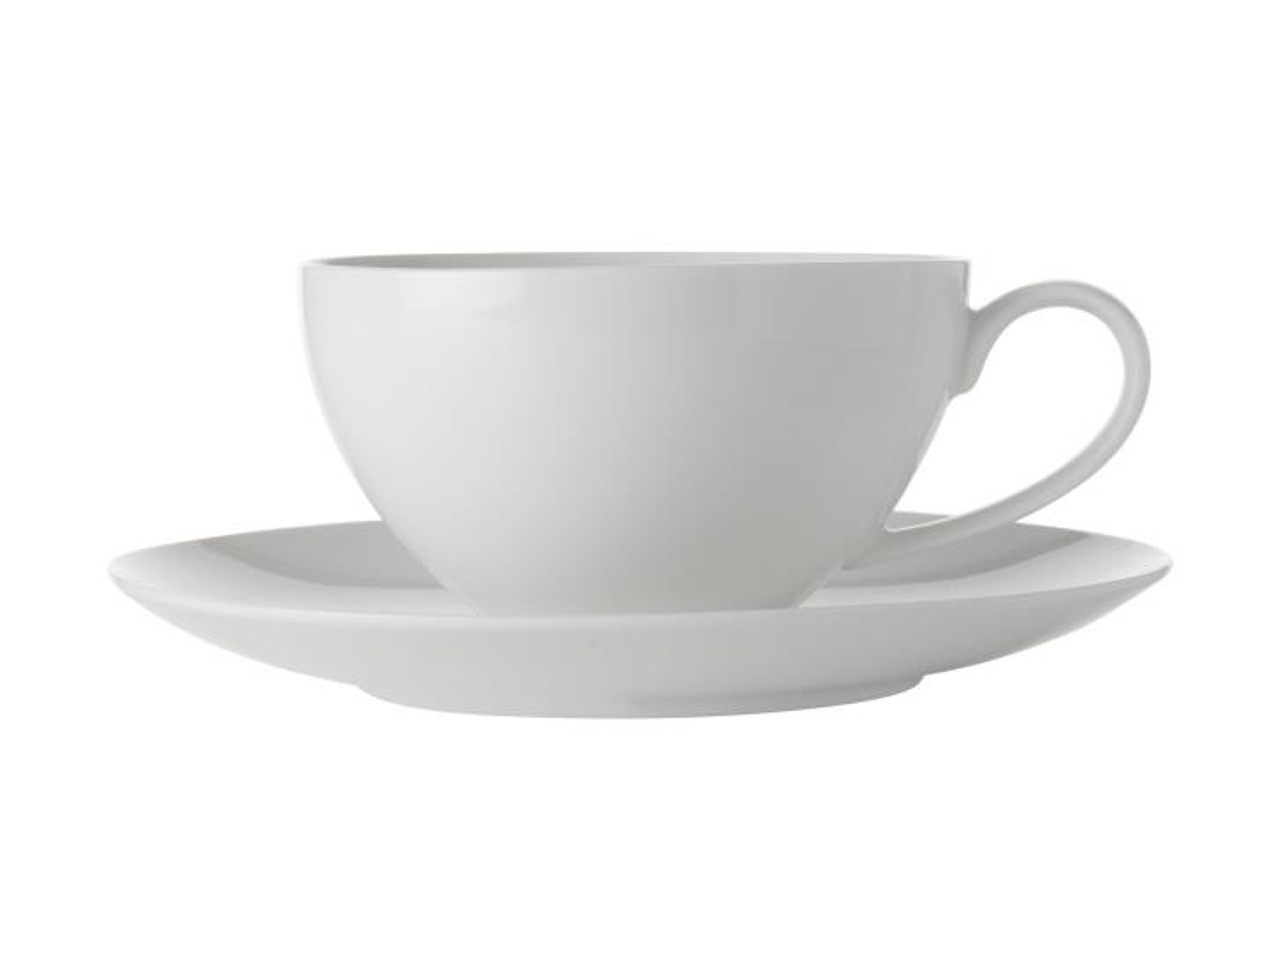 CUP & SAUCER - CAPPUCCINO